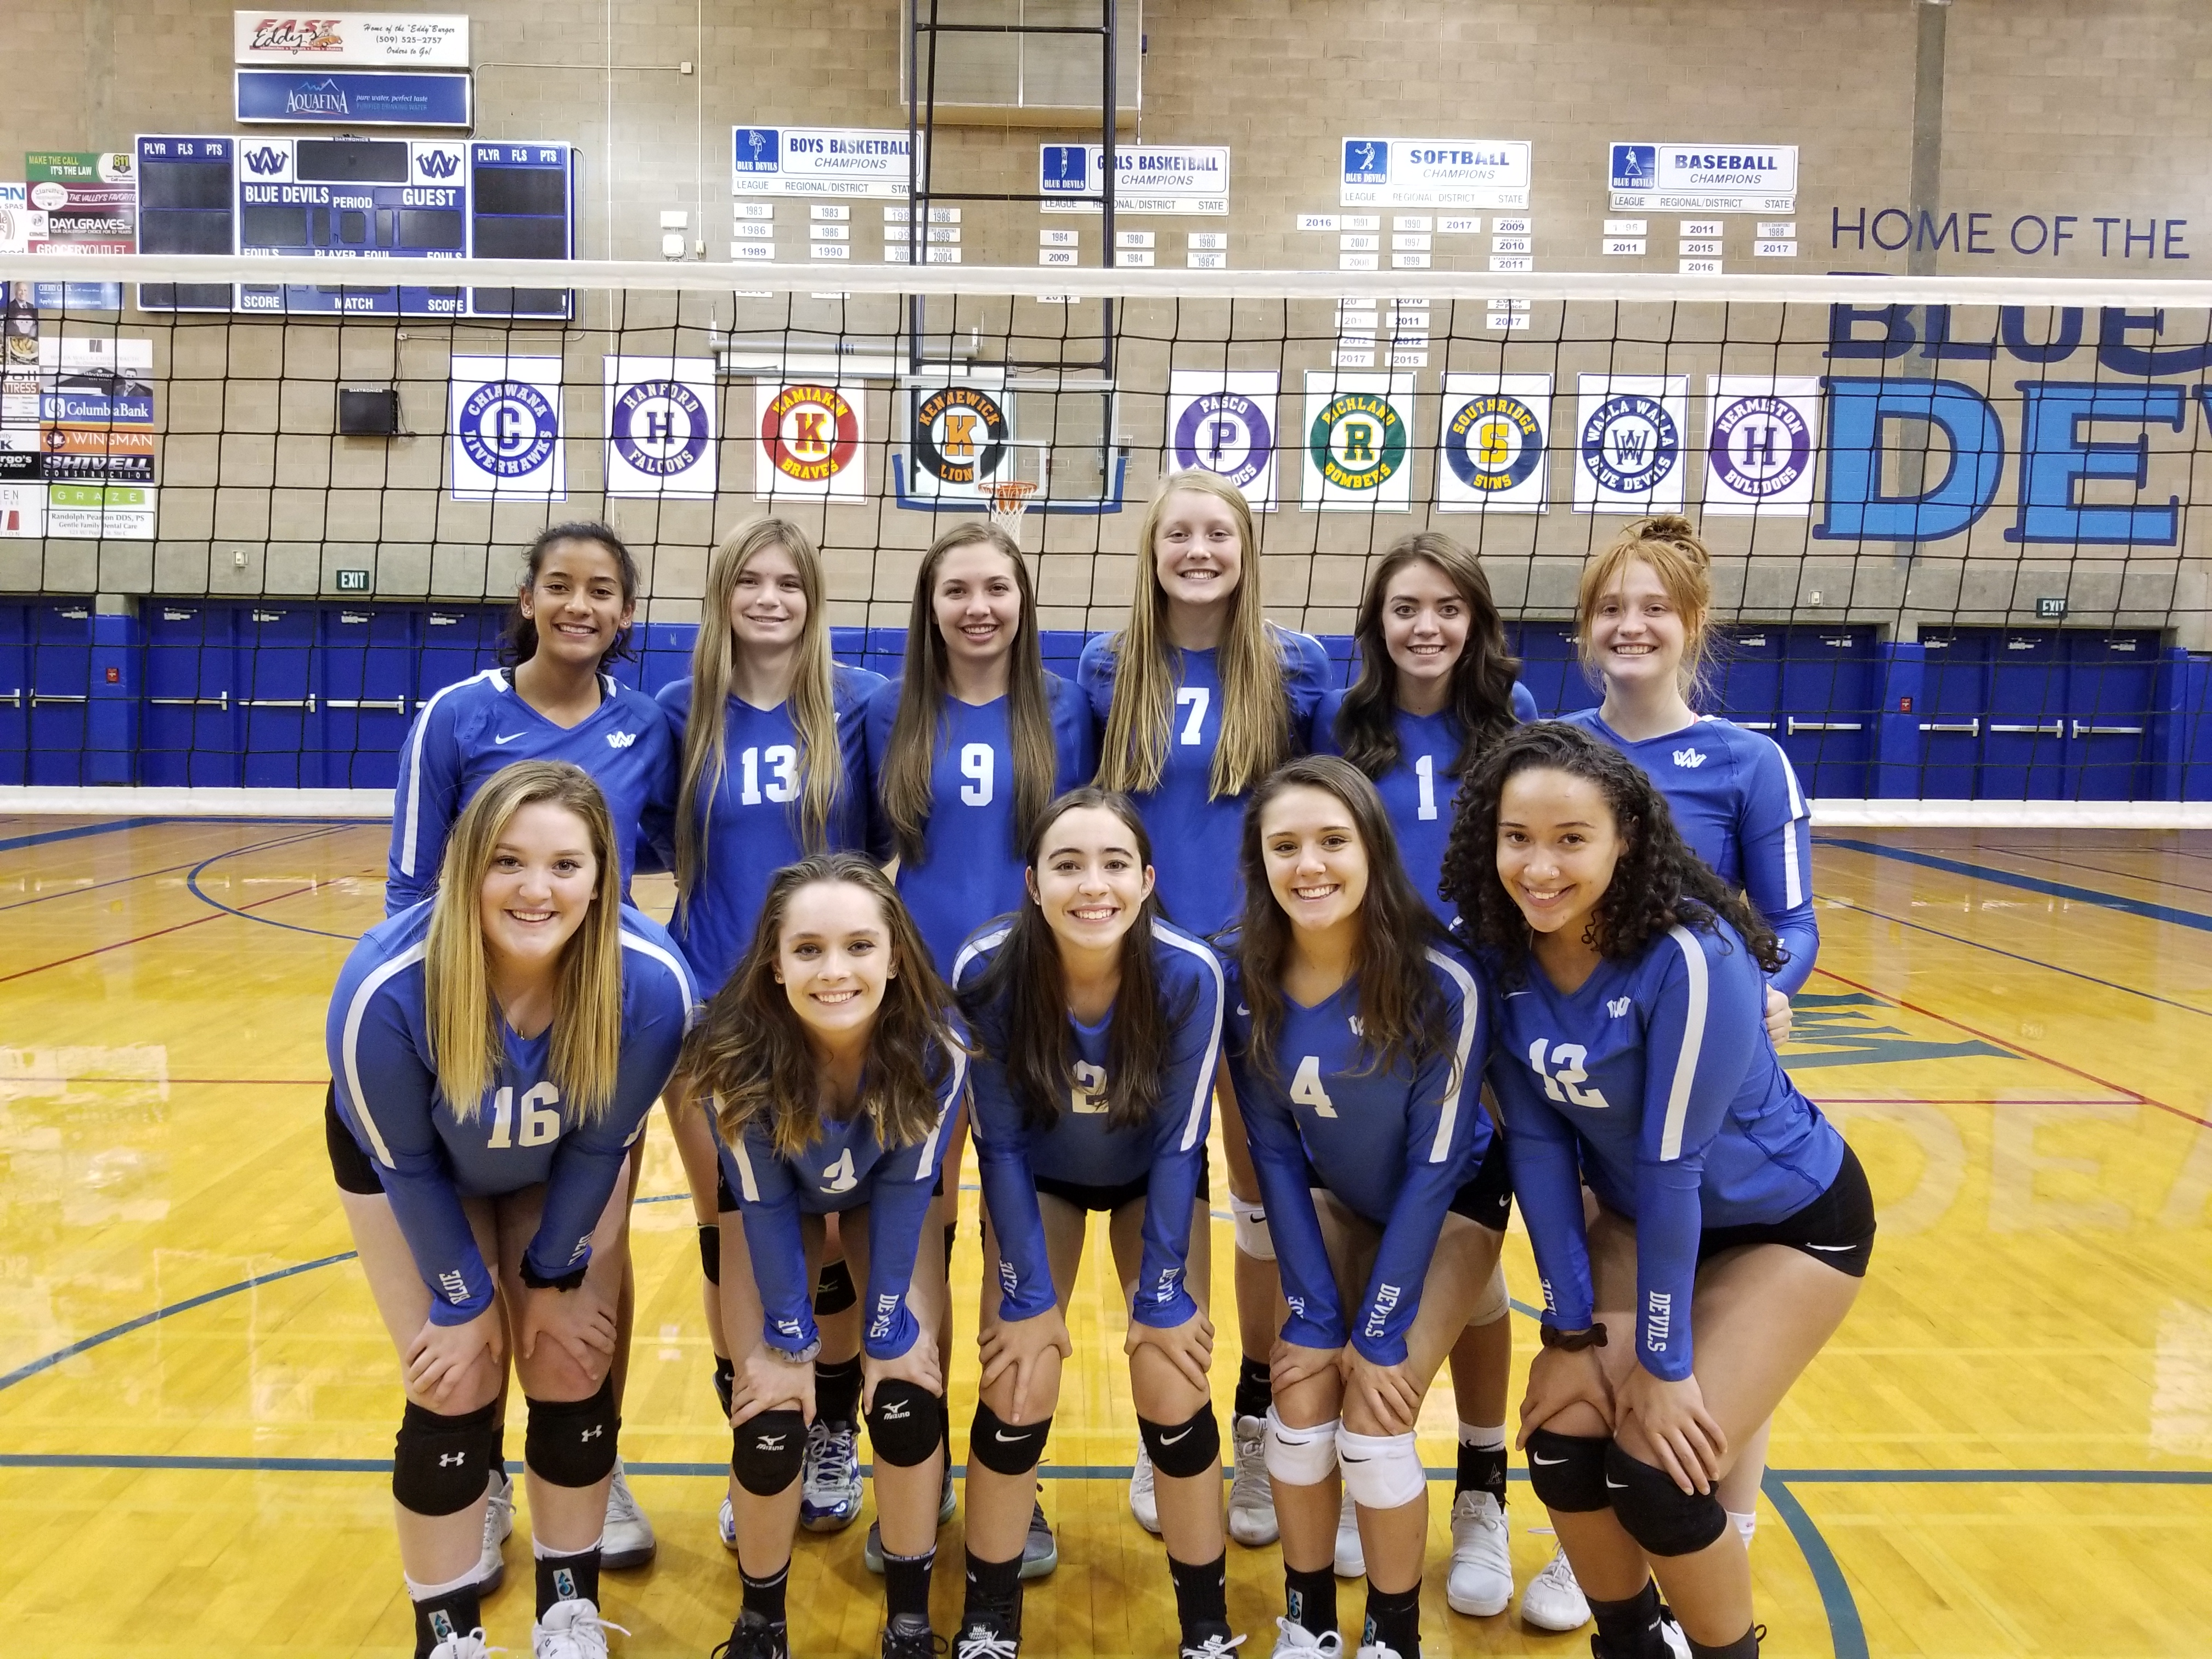 images/athletics/Volleyball/2018_Varsity_Volleyball.jpg